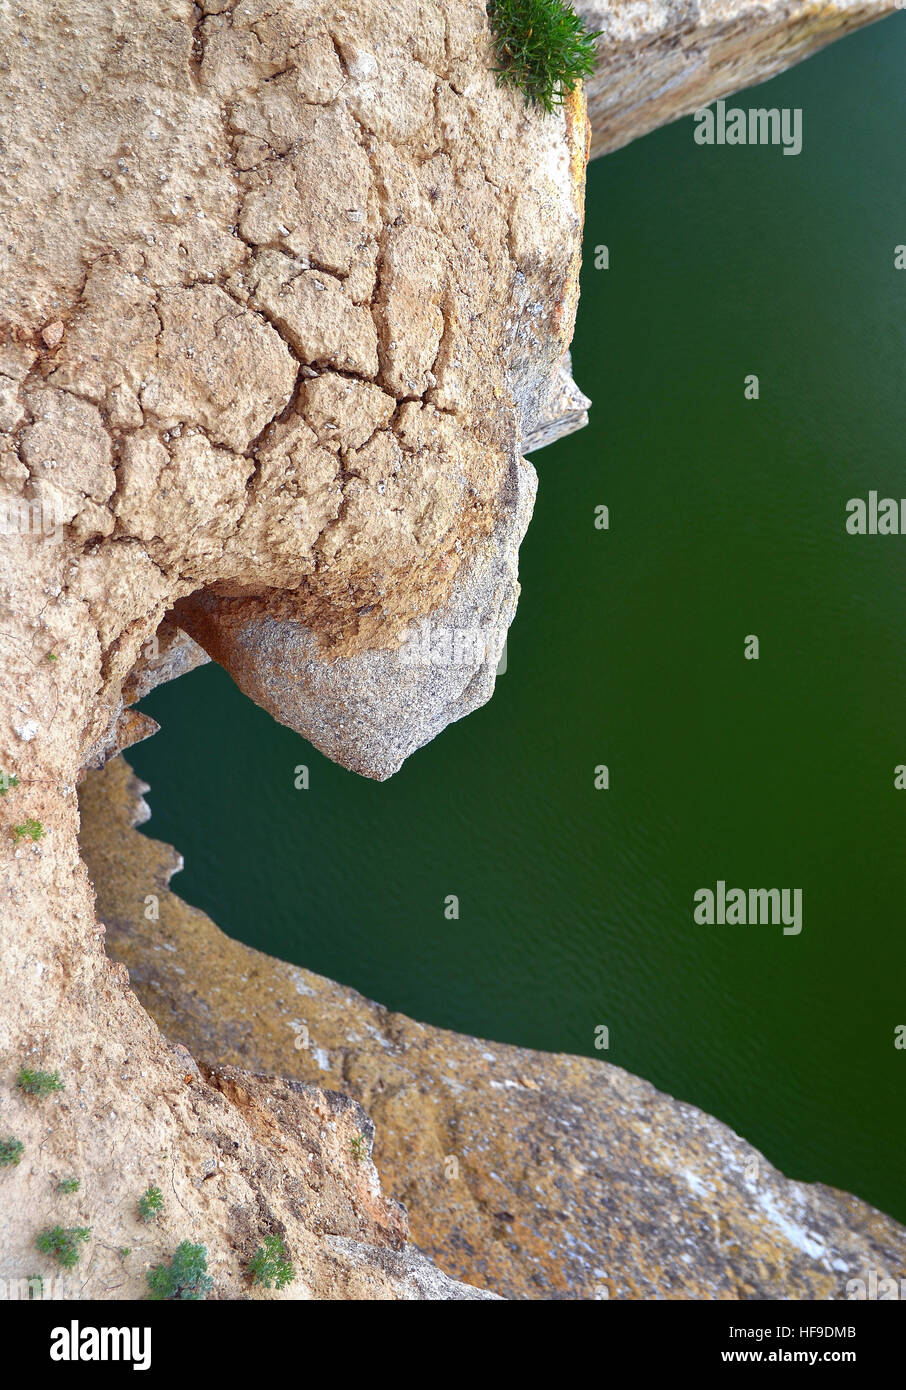 a stone jag seen from above one cliff of a lake seems like creating the image of a giant  dorment dragon - Stock Image